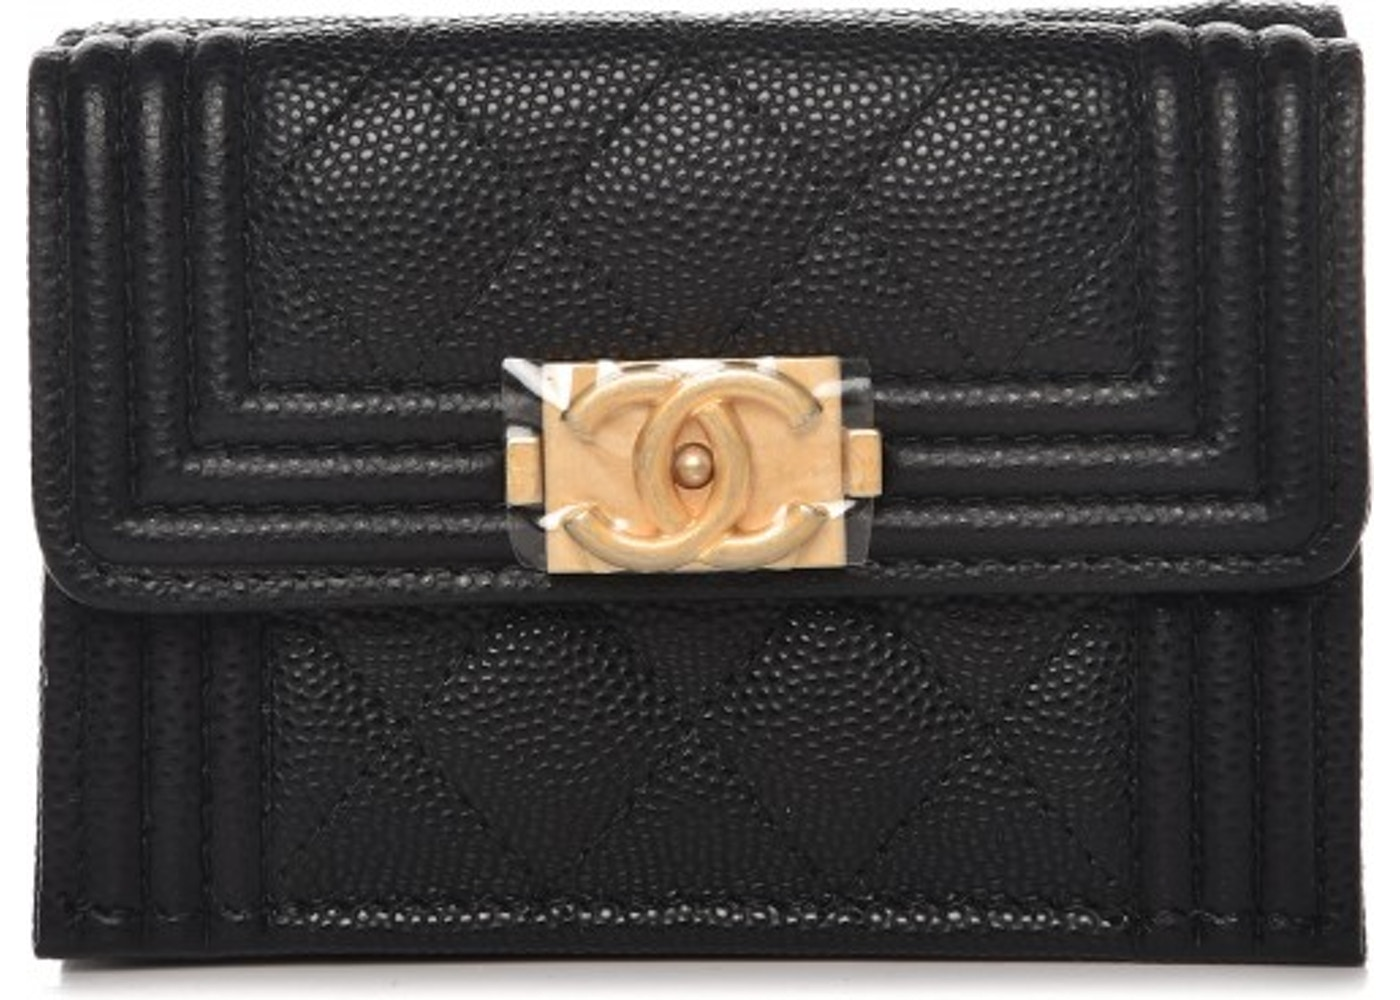 a029d98a7bce Chanel Boy Flap Wallet Quilted Diamond Caviar Small Black. Quilted Diamond  Caviar Small Black